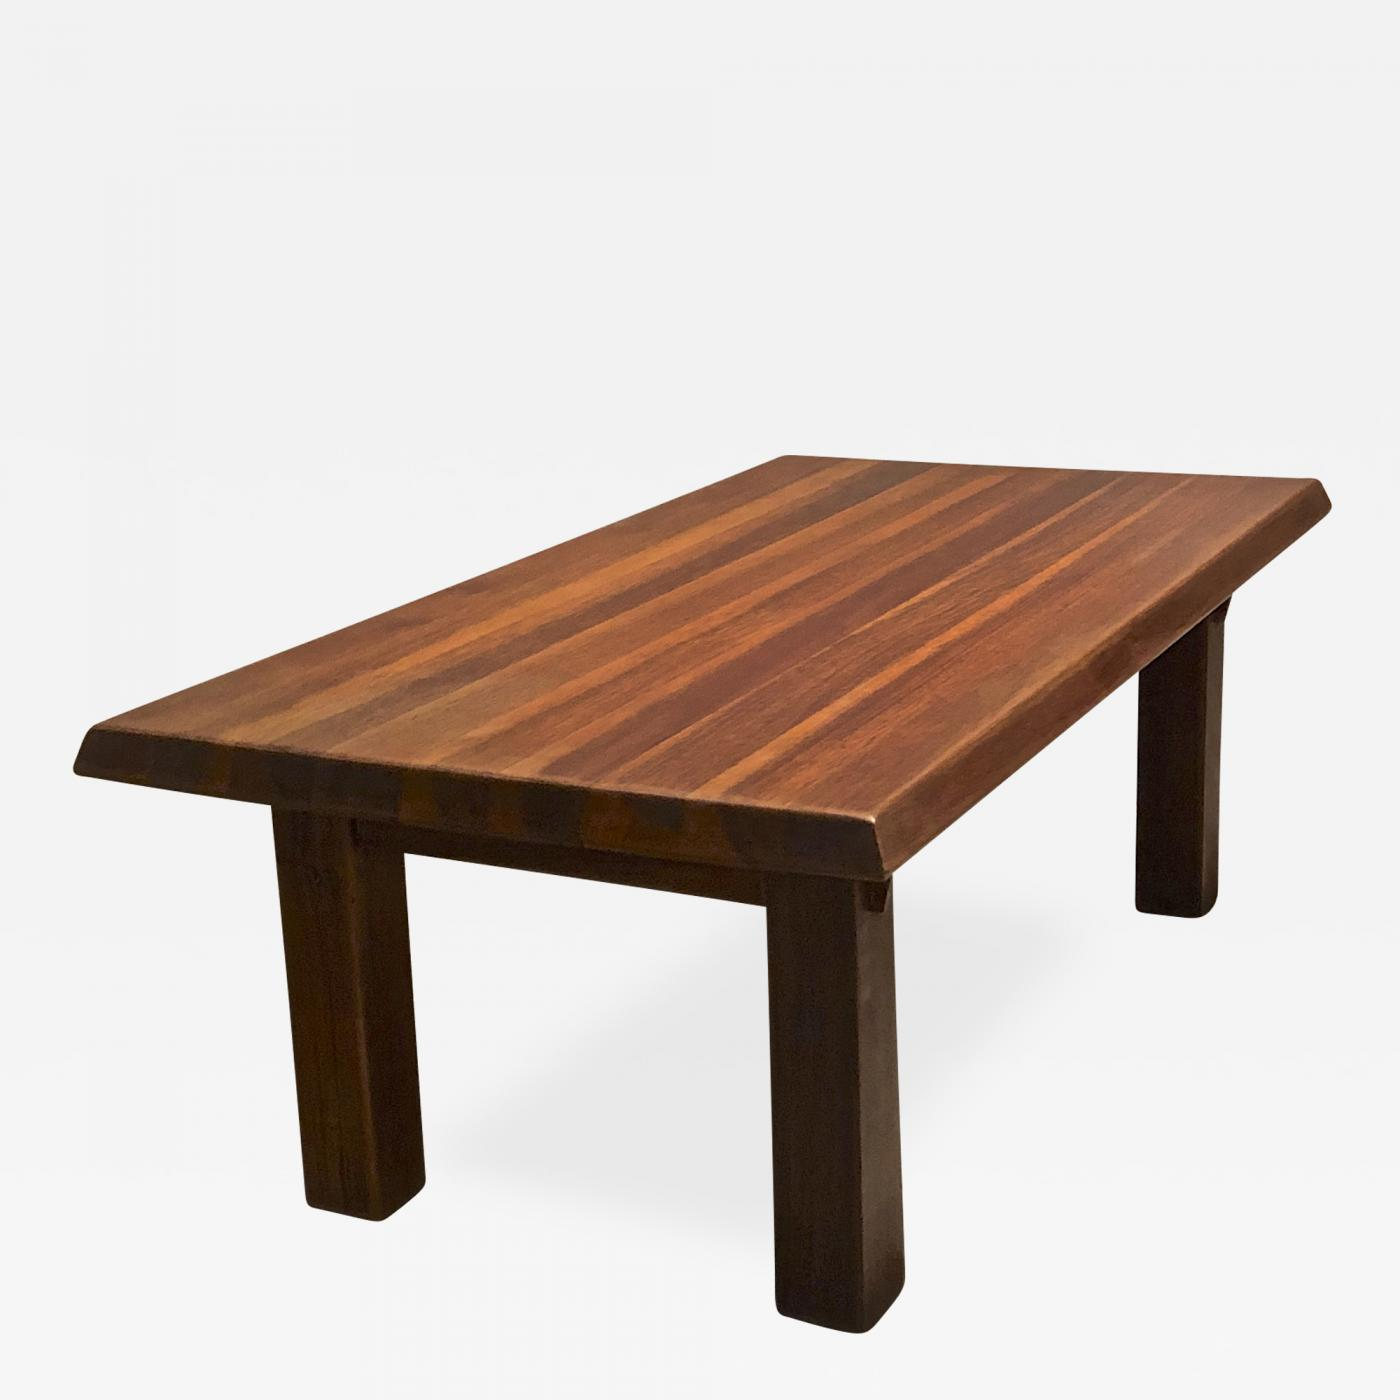 Prime Charlotte Perriand Brazil Organic Mahogany Coffee Table Ocoug Best Dining Table And Chair Ideas Images Ocougorg